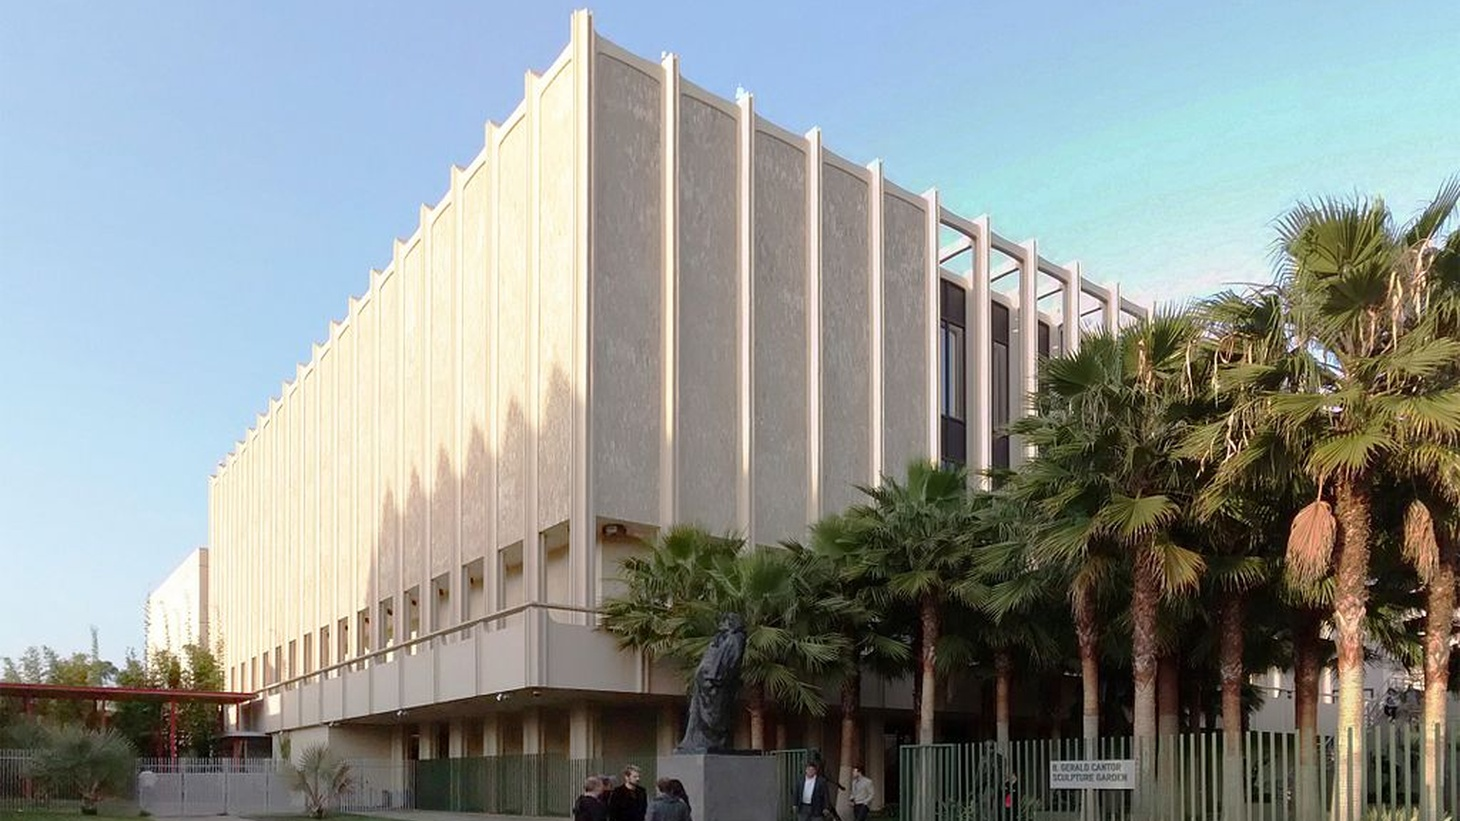 The Los Angeles County Museum of Art was designed by  William Pereira in 1965. Now four of the buildings at the museum are being demolished to make way for a new $750 million structure.